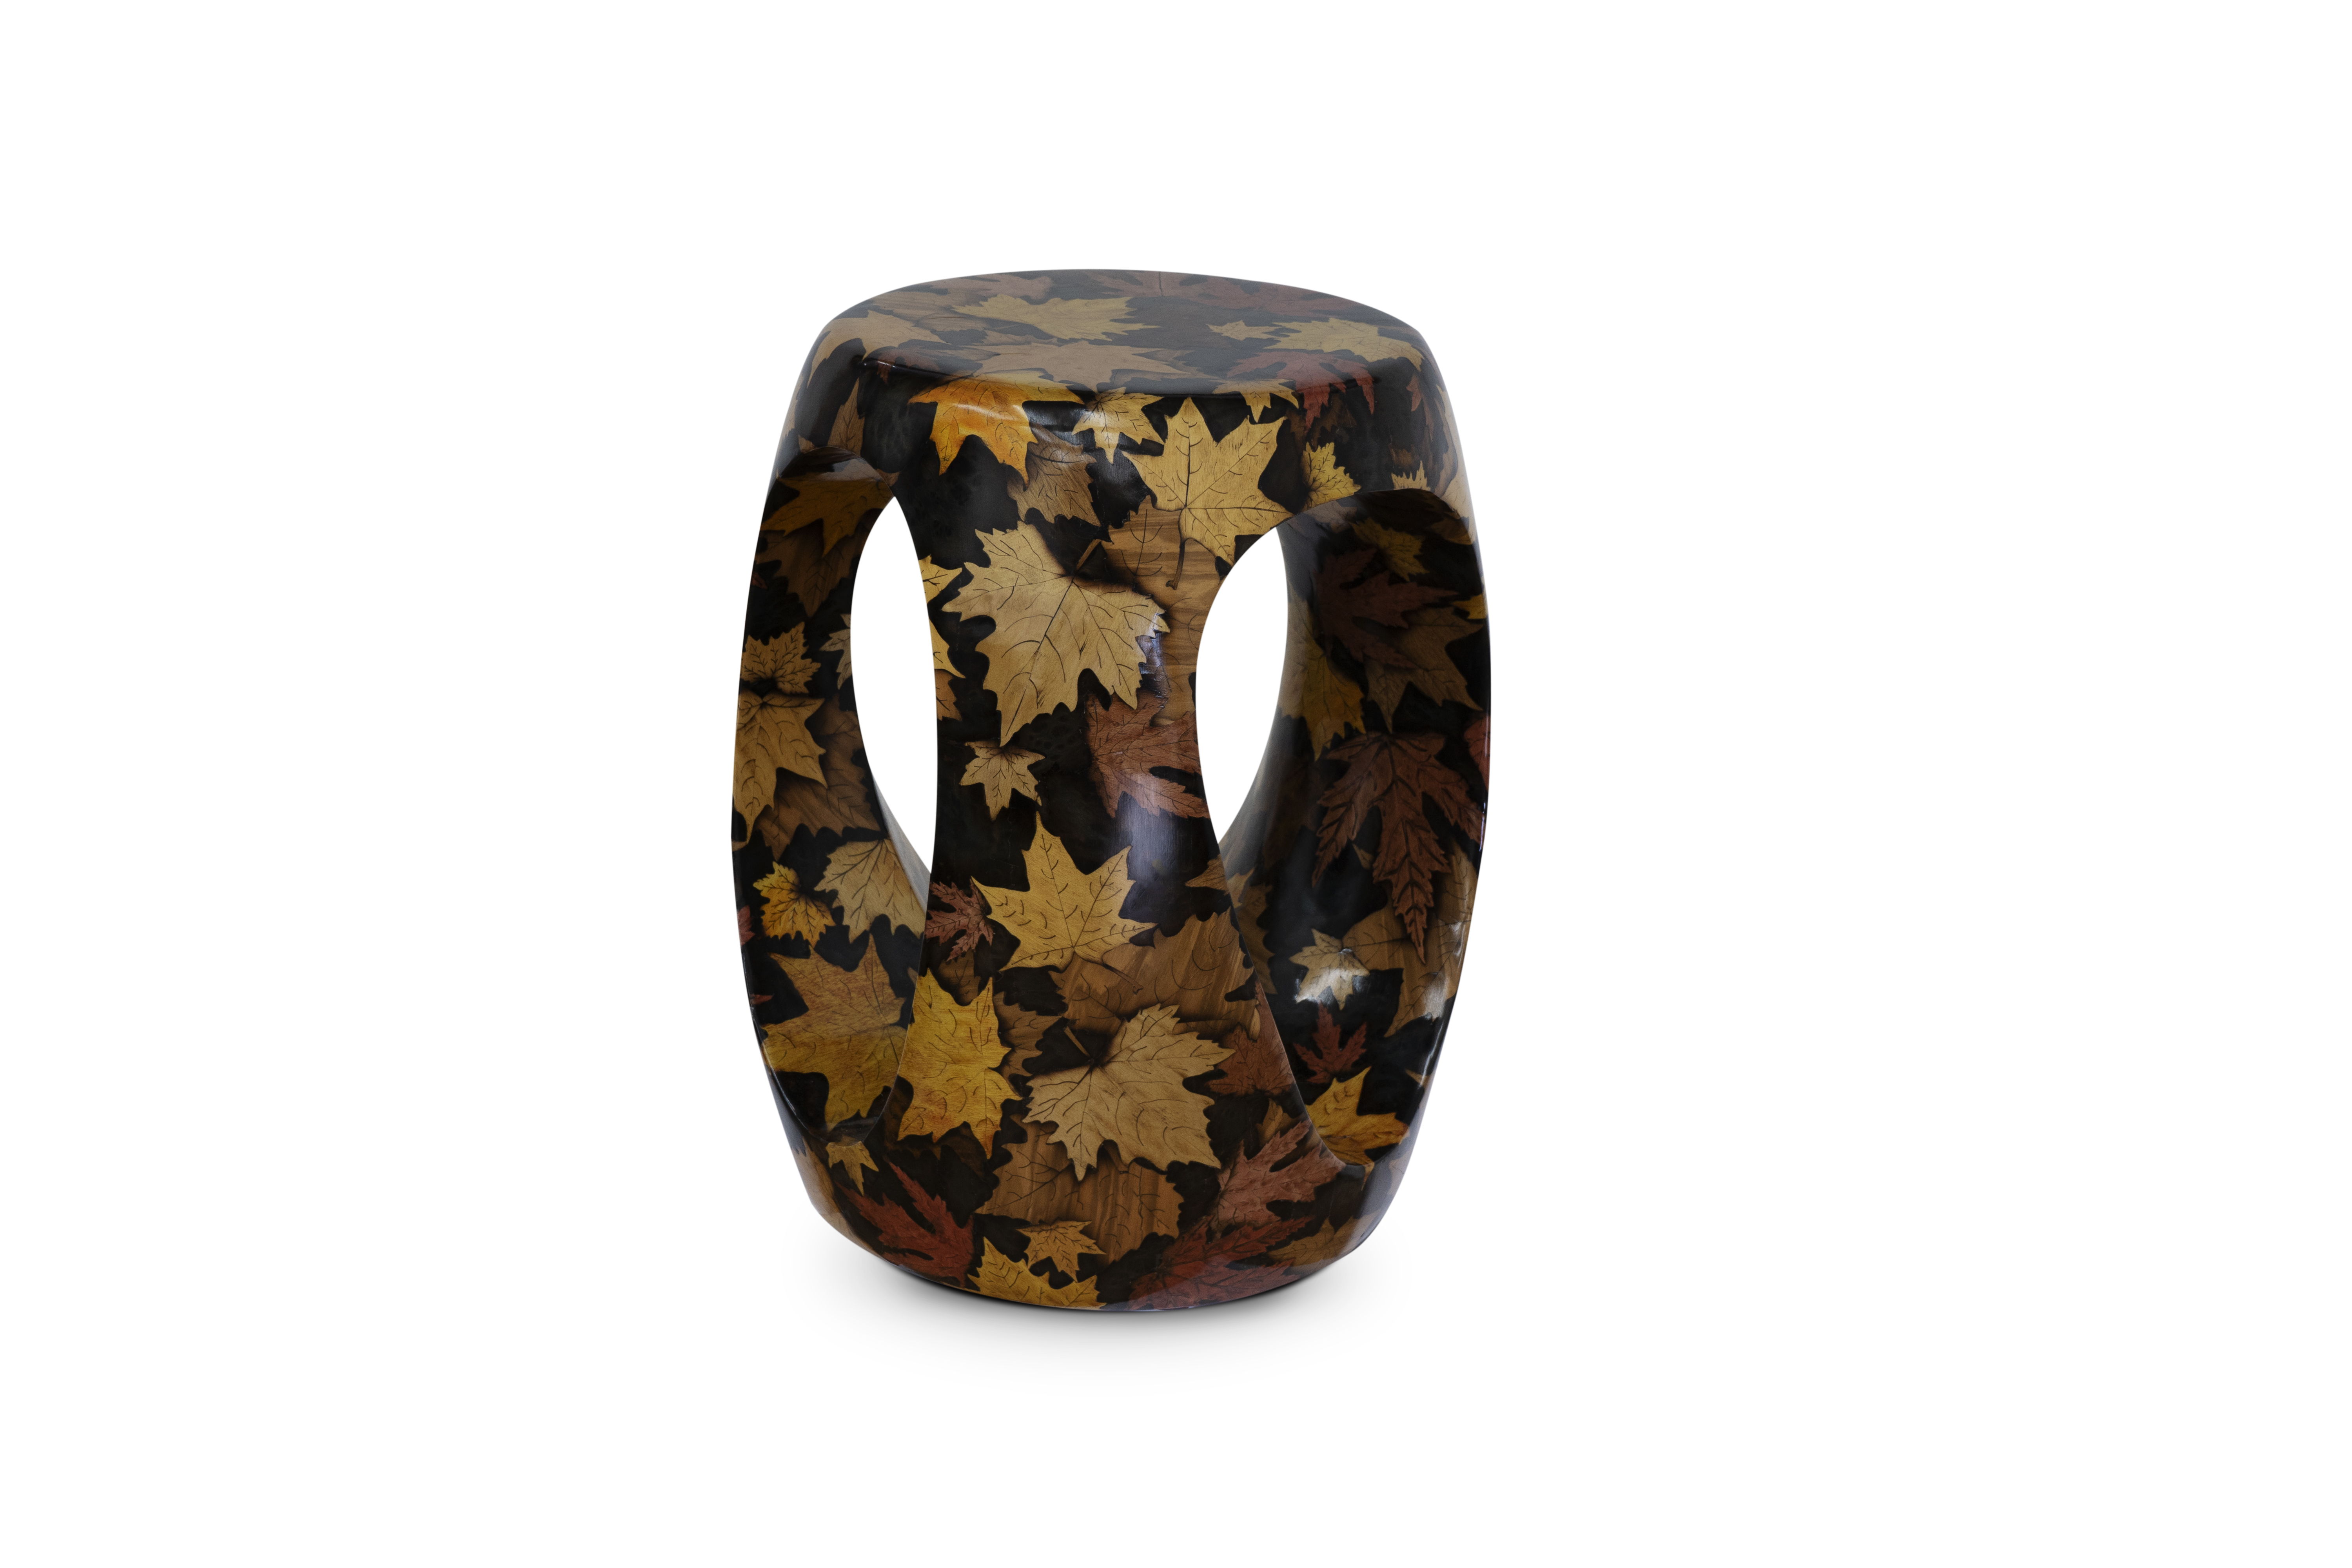 ArtsTool stool marquetry artstool collection ARTsTOOL Collection – Craftsmanship Masterpieces by Project CULTURE Autumm wood carving Artstool collection